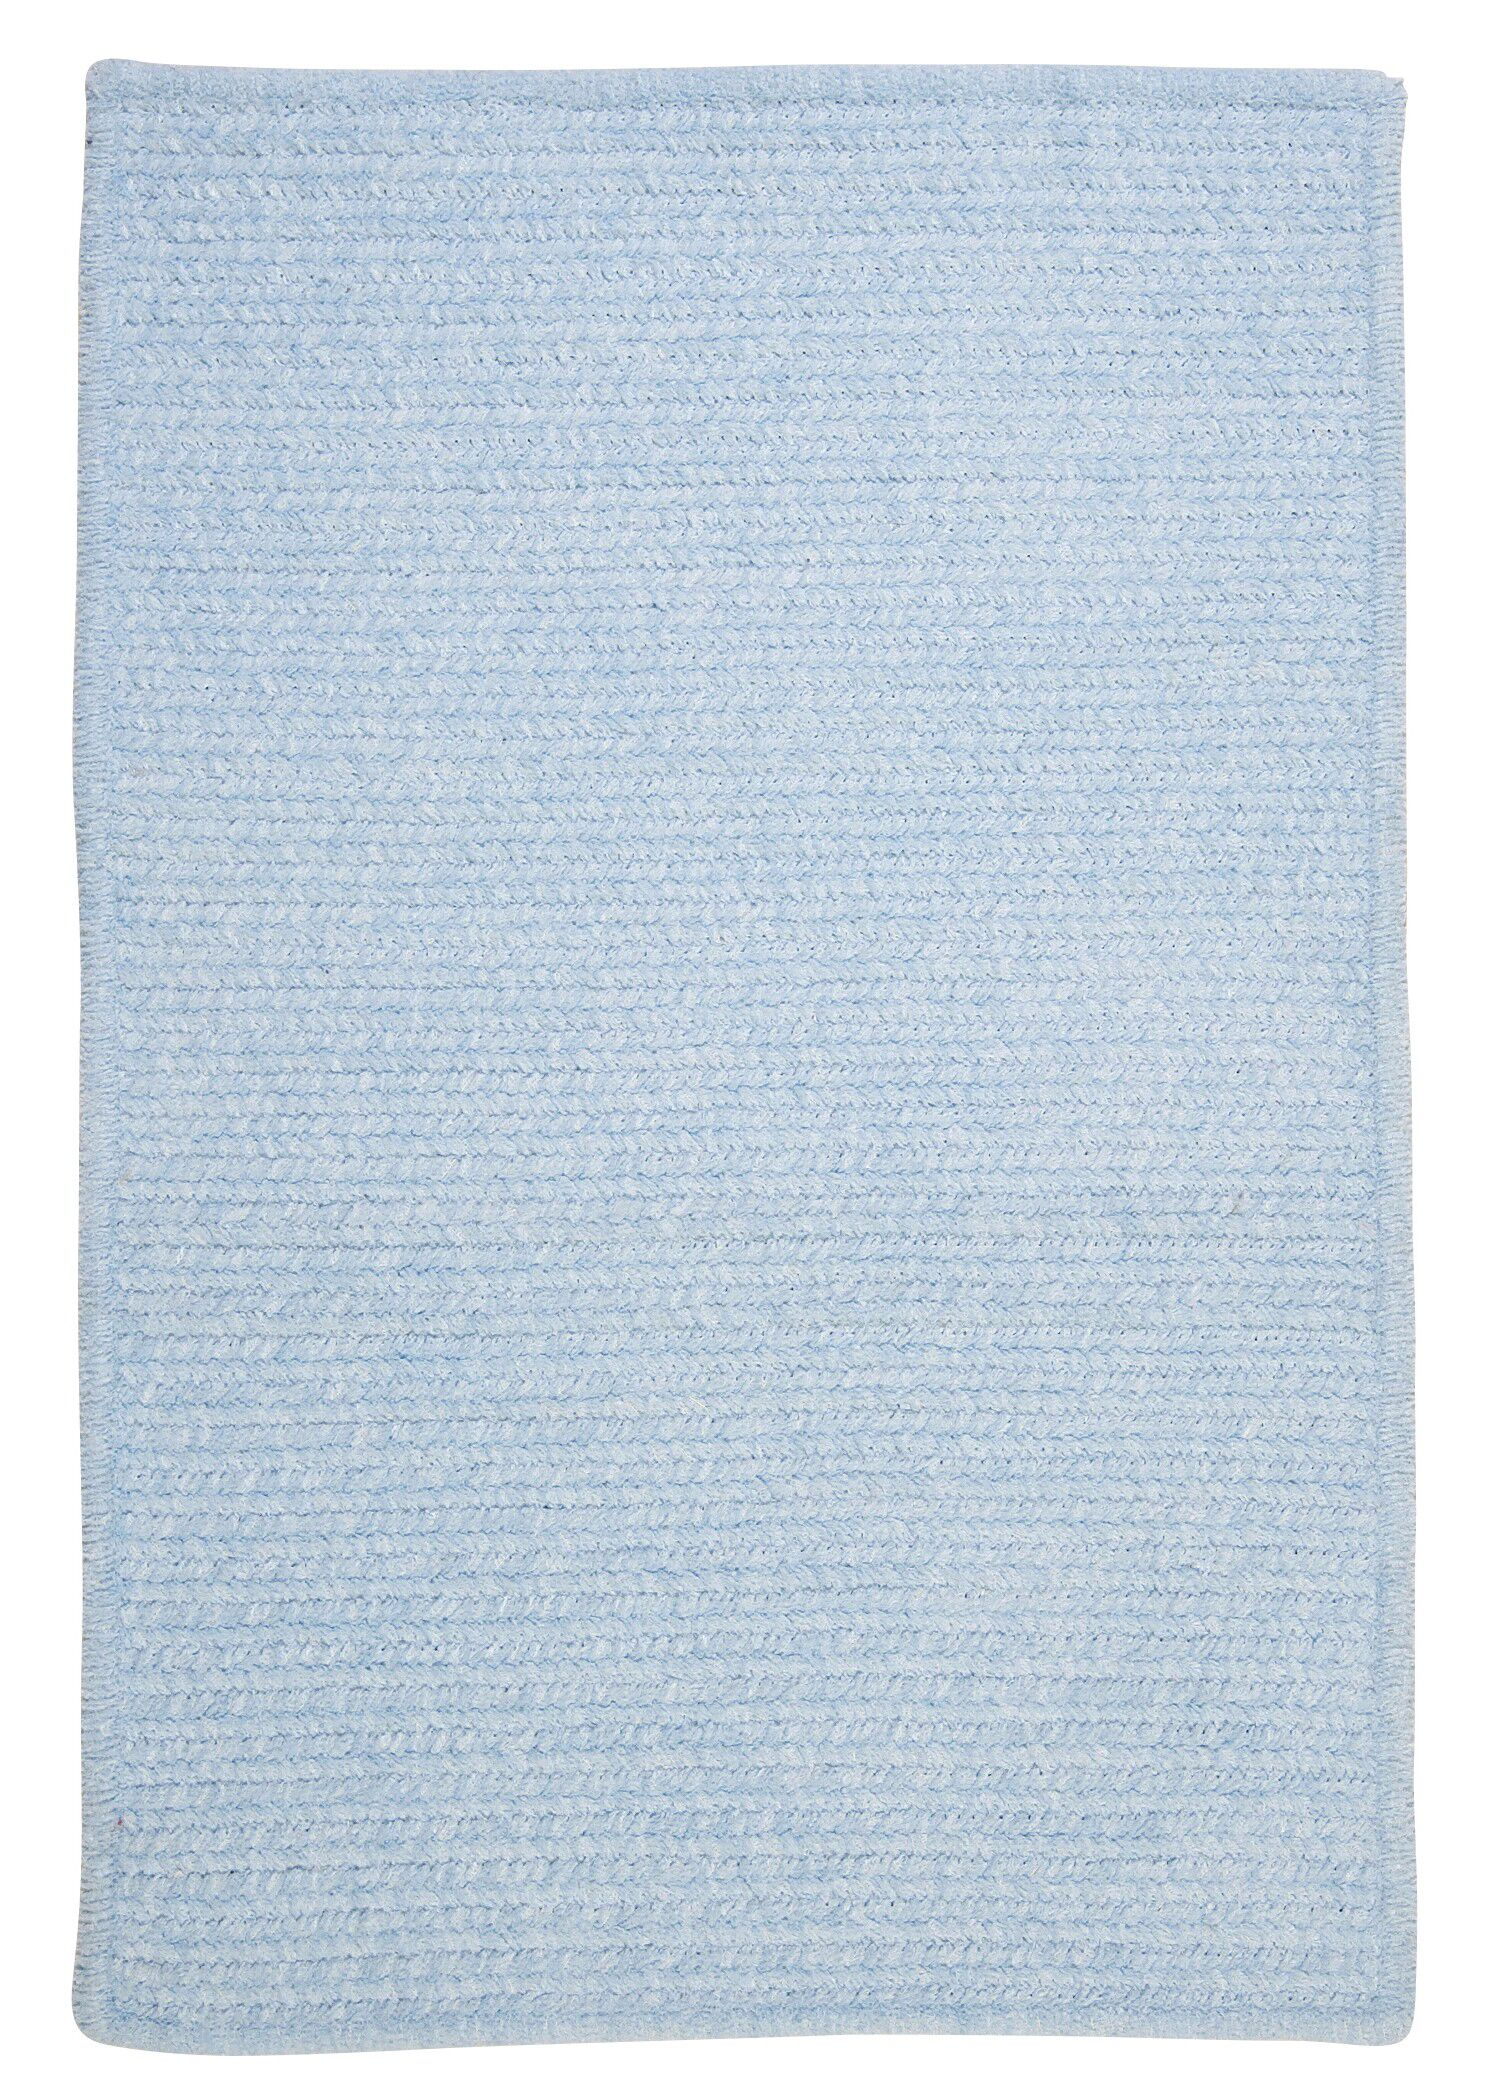 Gibbons Sky Blue Indoor/Outdoor Area Rug Rug Size: Runner 2' x 10'